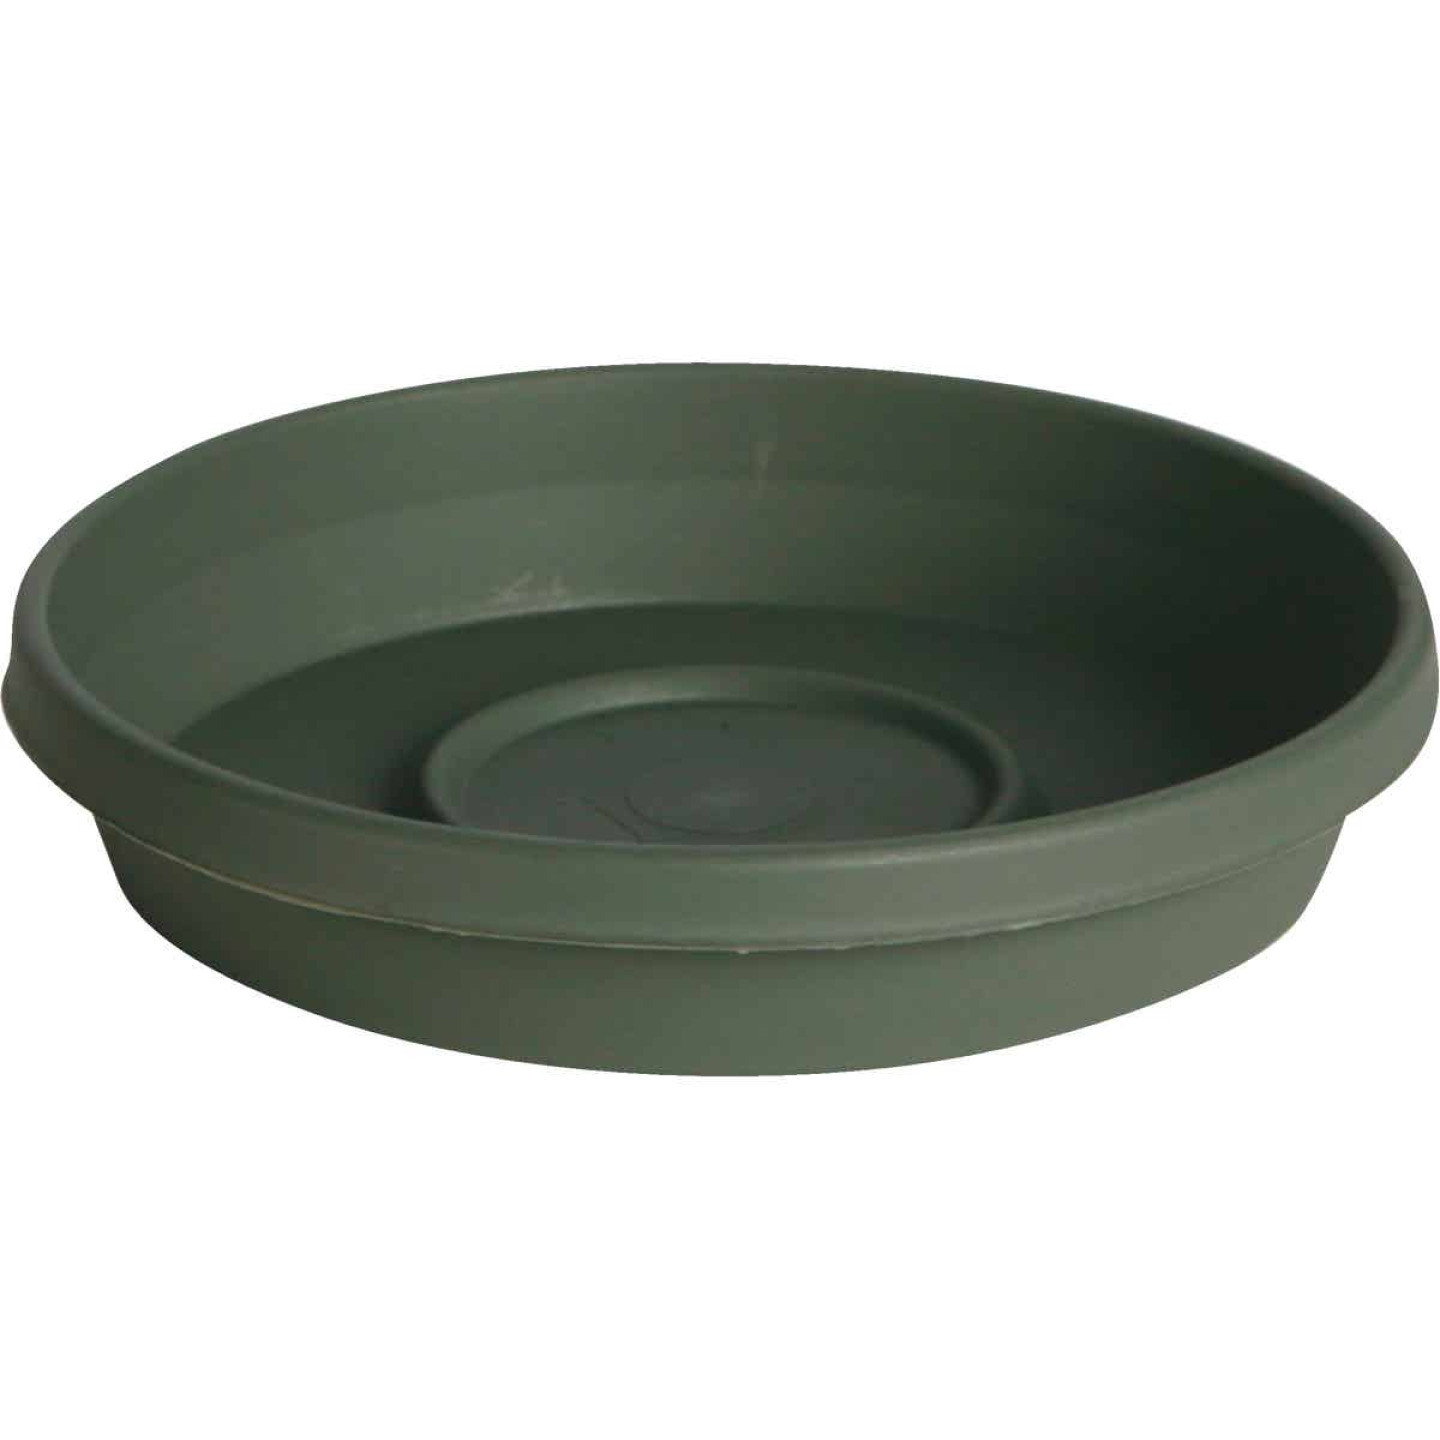 Bloem Terra Living Green 16 In. Plastic Flower Pot Saucer Image 1